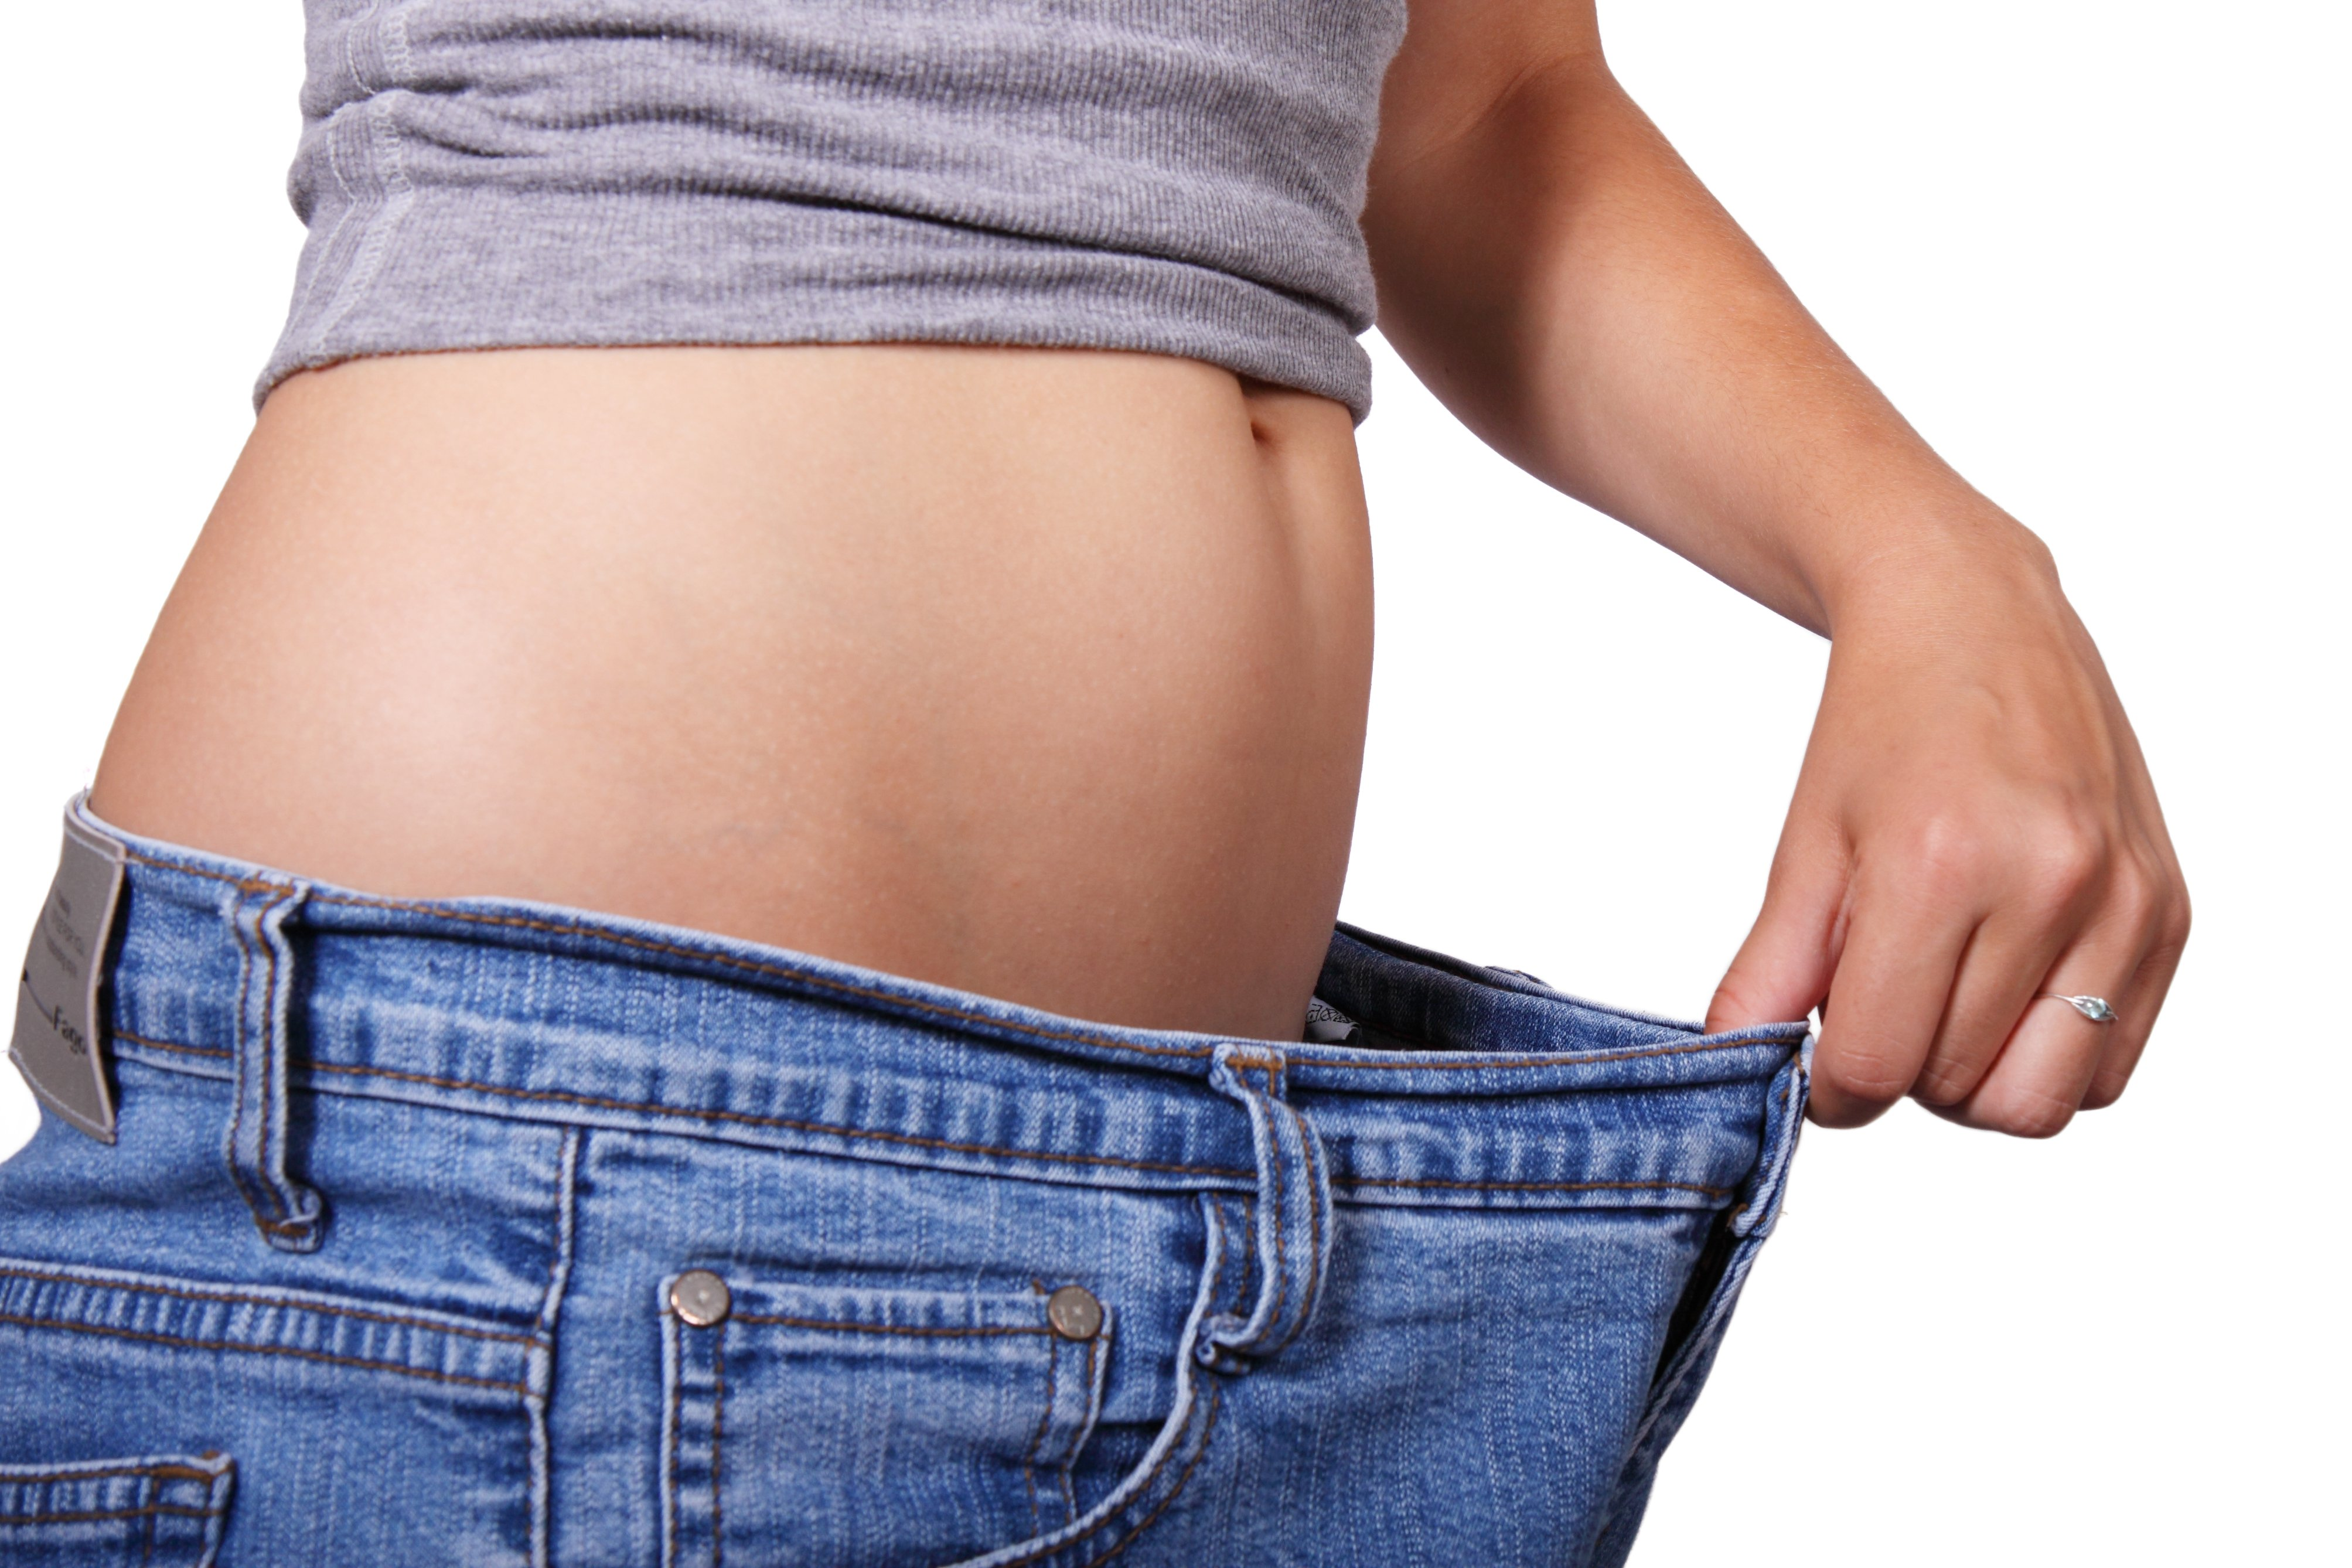 Looking for Belly Fat Removal Techniques? Try these 6 Natural Methods